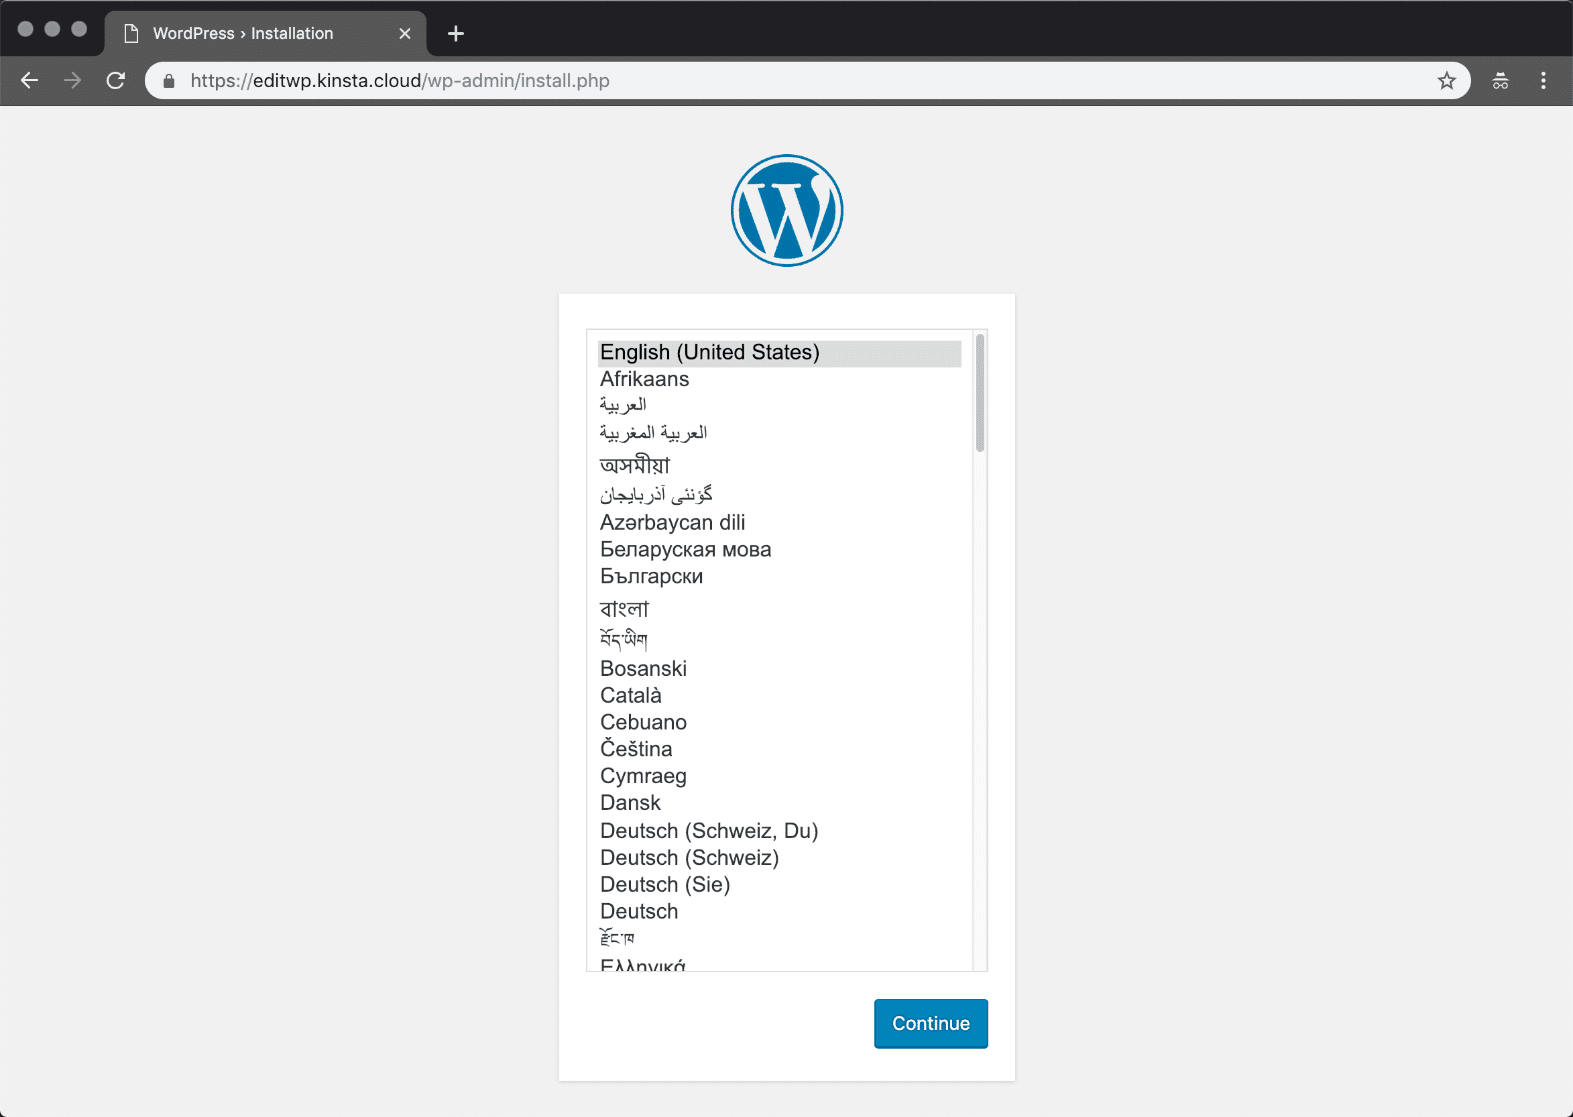 WordPress installationssprog